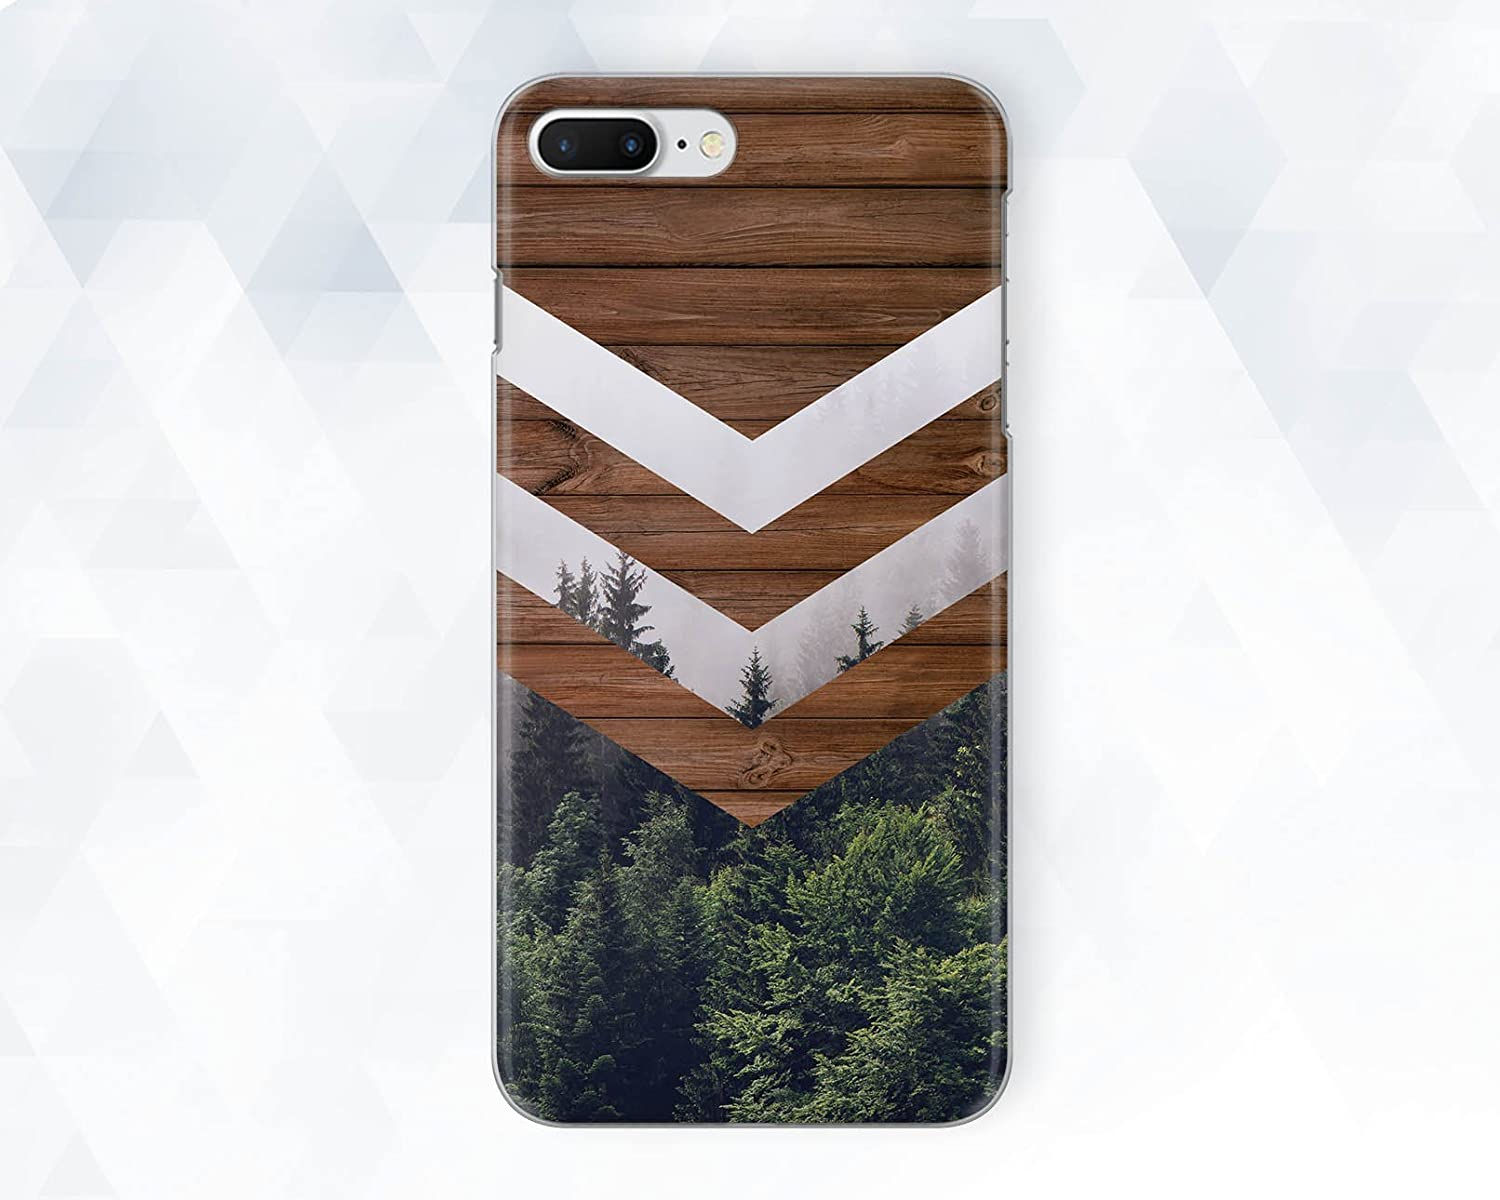 Wood Wooden Forest Nature Phone Case For iPhone 6 6s Plus 7 8 Plus Xs Max XR 10 Case Cover For Samsung Galaxy S6 S7 S8 S9 Plus Note 8 9